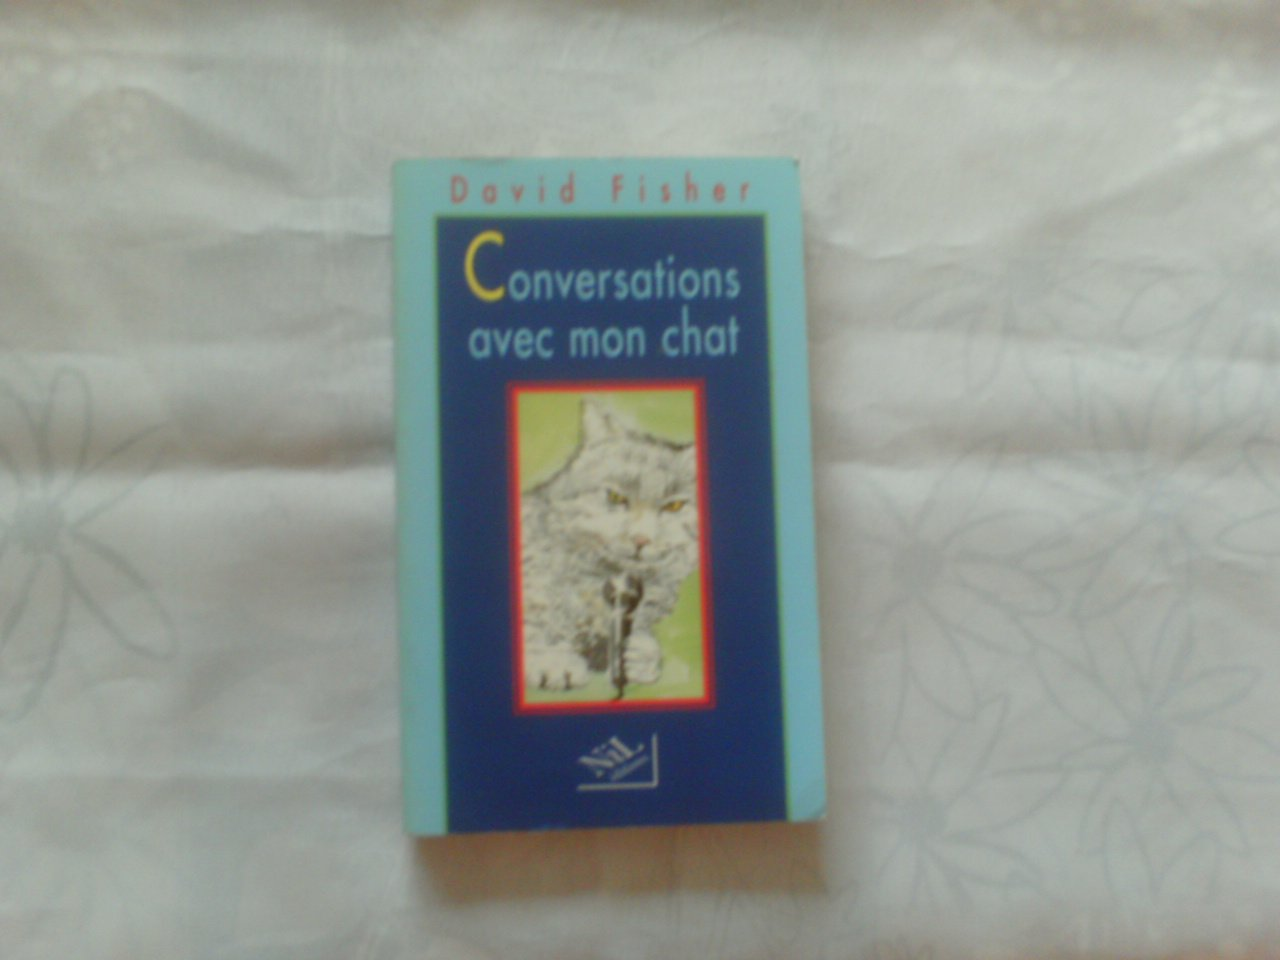 Conversations avec mon chat Poche – 31 octobre 1995 David Fisher Marc Taraskoff Jean Rosenthal Nil